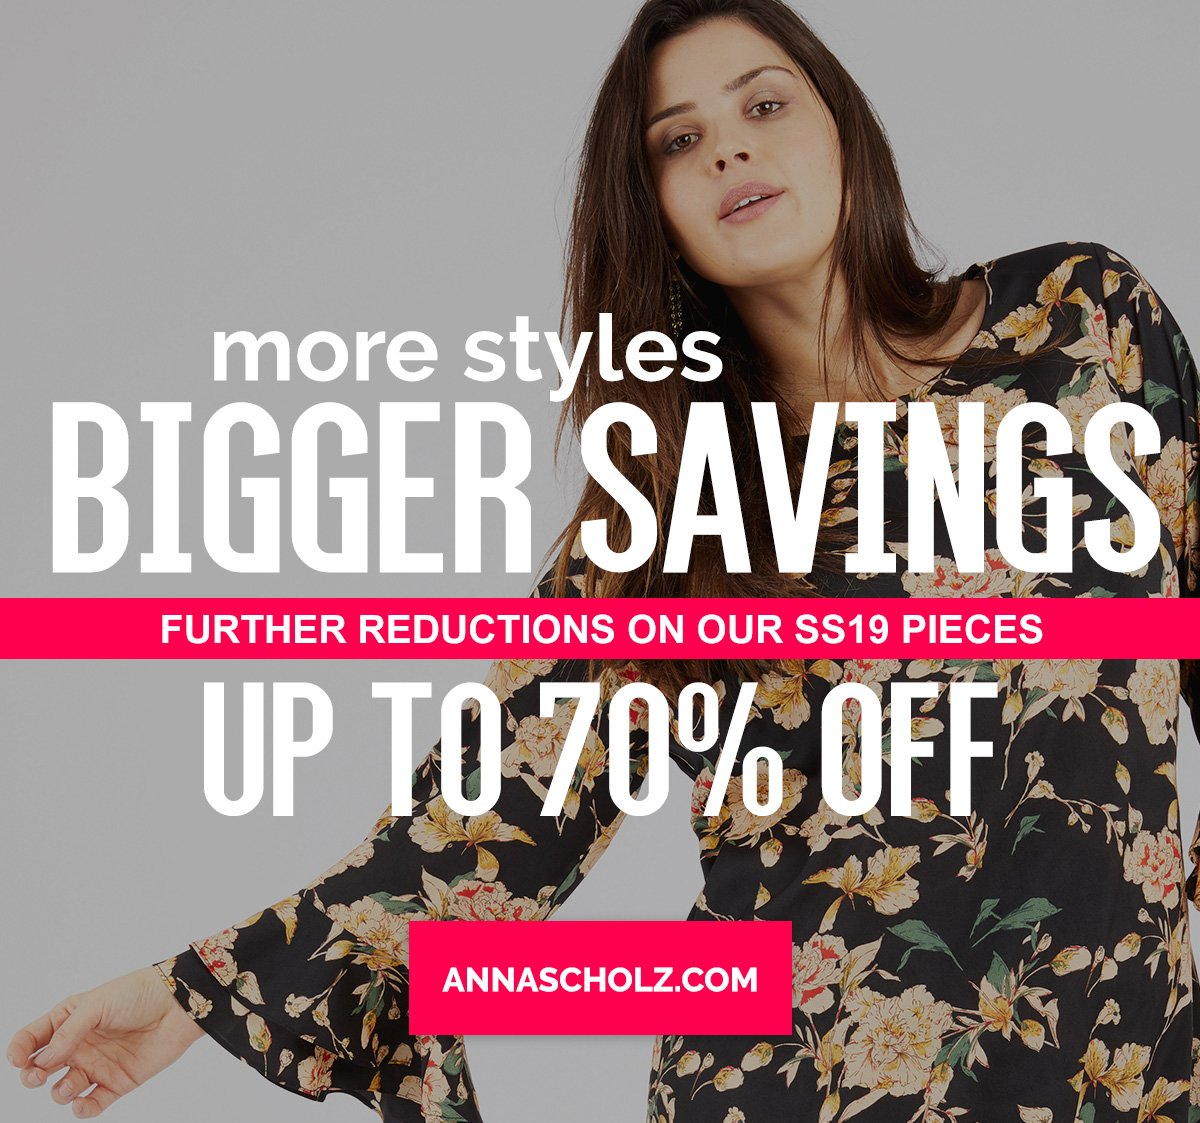 test Twitter Media - Bigger savings in the #annascholz #plussizedesigner #SALE https://t.co/kwh8VxU6Zt https://t.co/xYGjUTCMYM